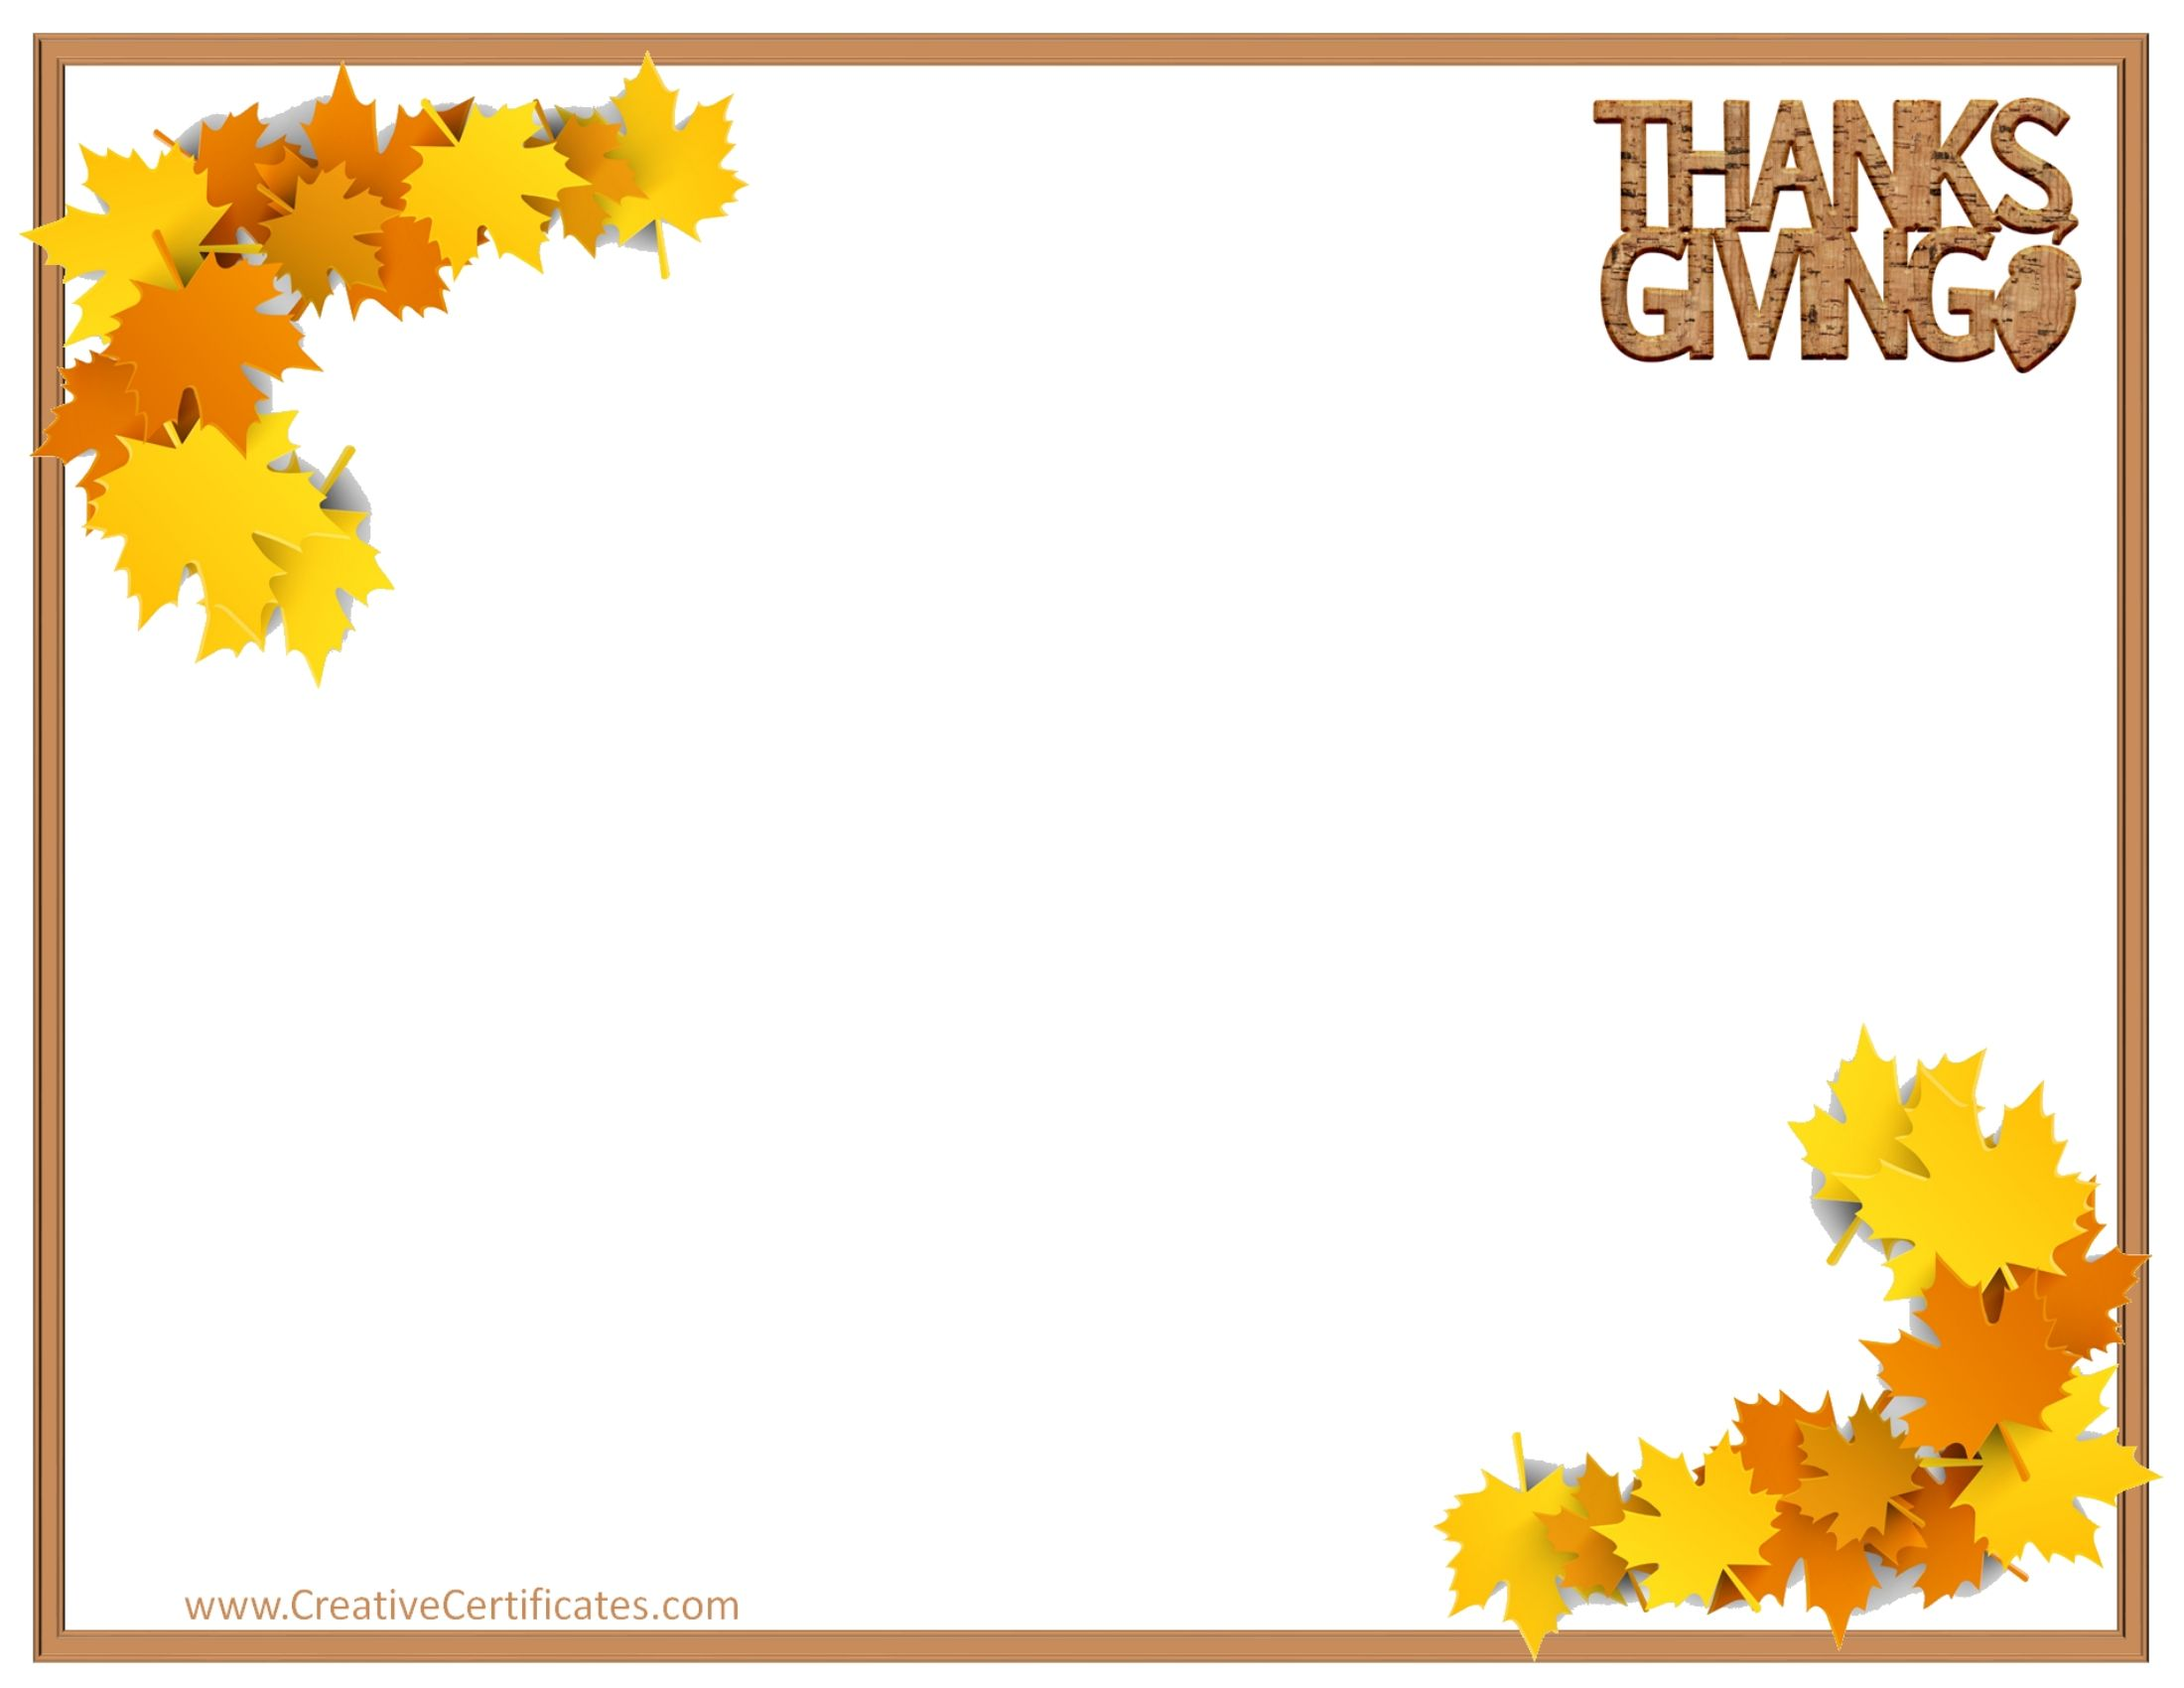 Word thanksgiving templates insrenterprises word thanksgiving templates stopboris Gallery